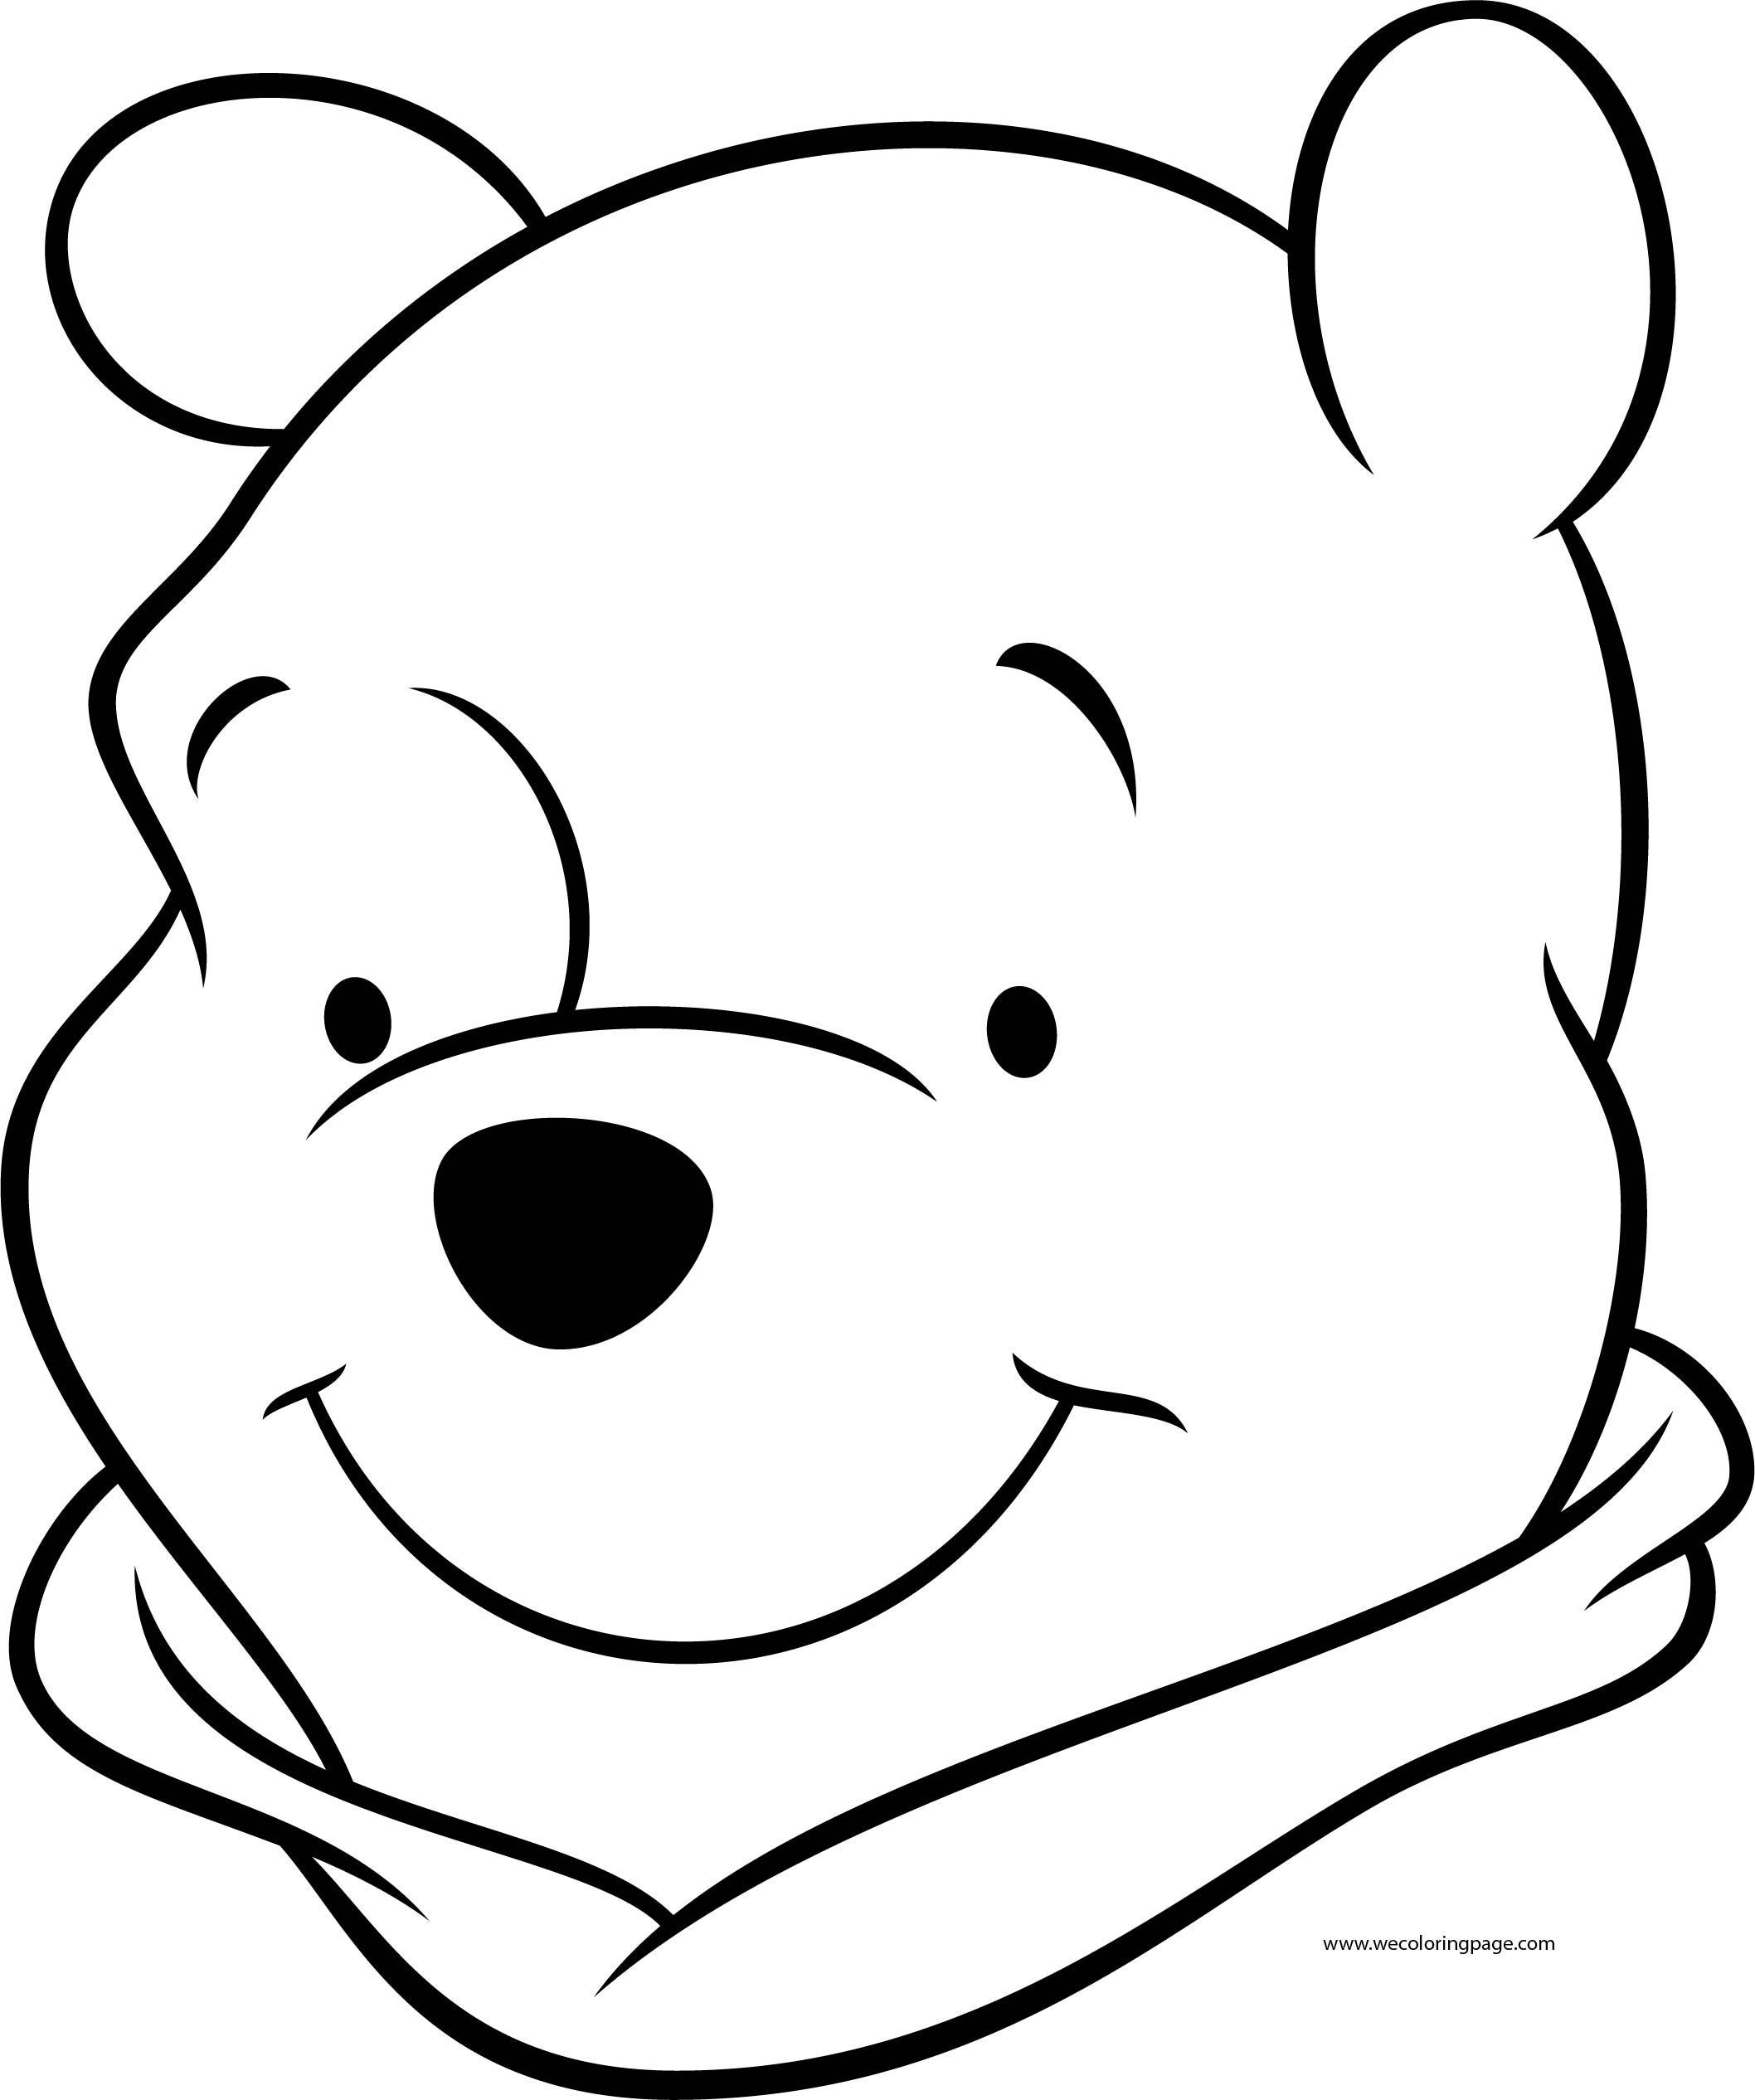 Winnie The Pooh Big Face Coloring Page